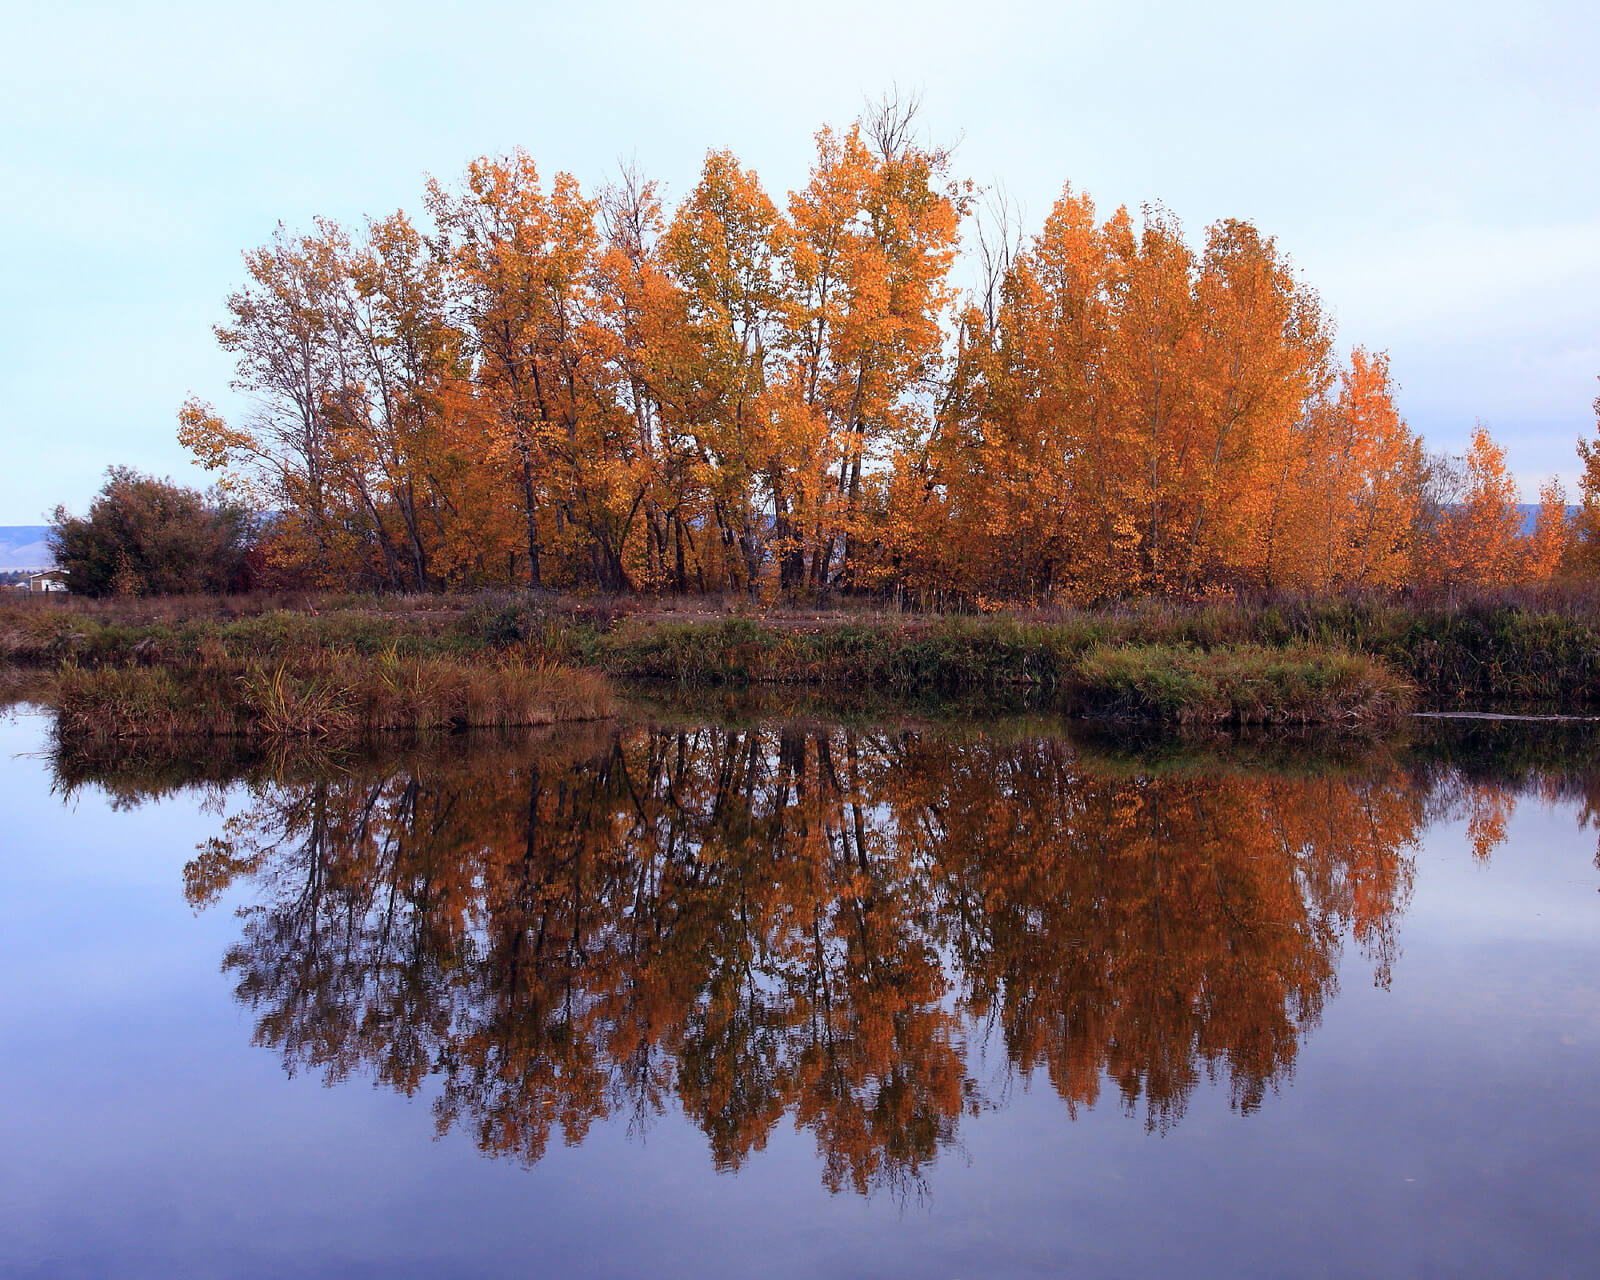 Woodhouse Ponds, Ellensburg in autumn - Photo by Jl Cummins